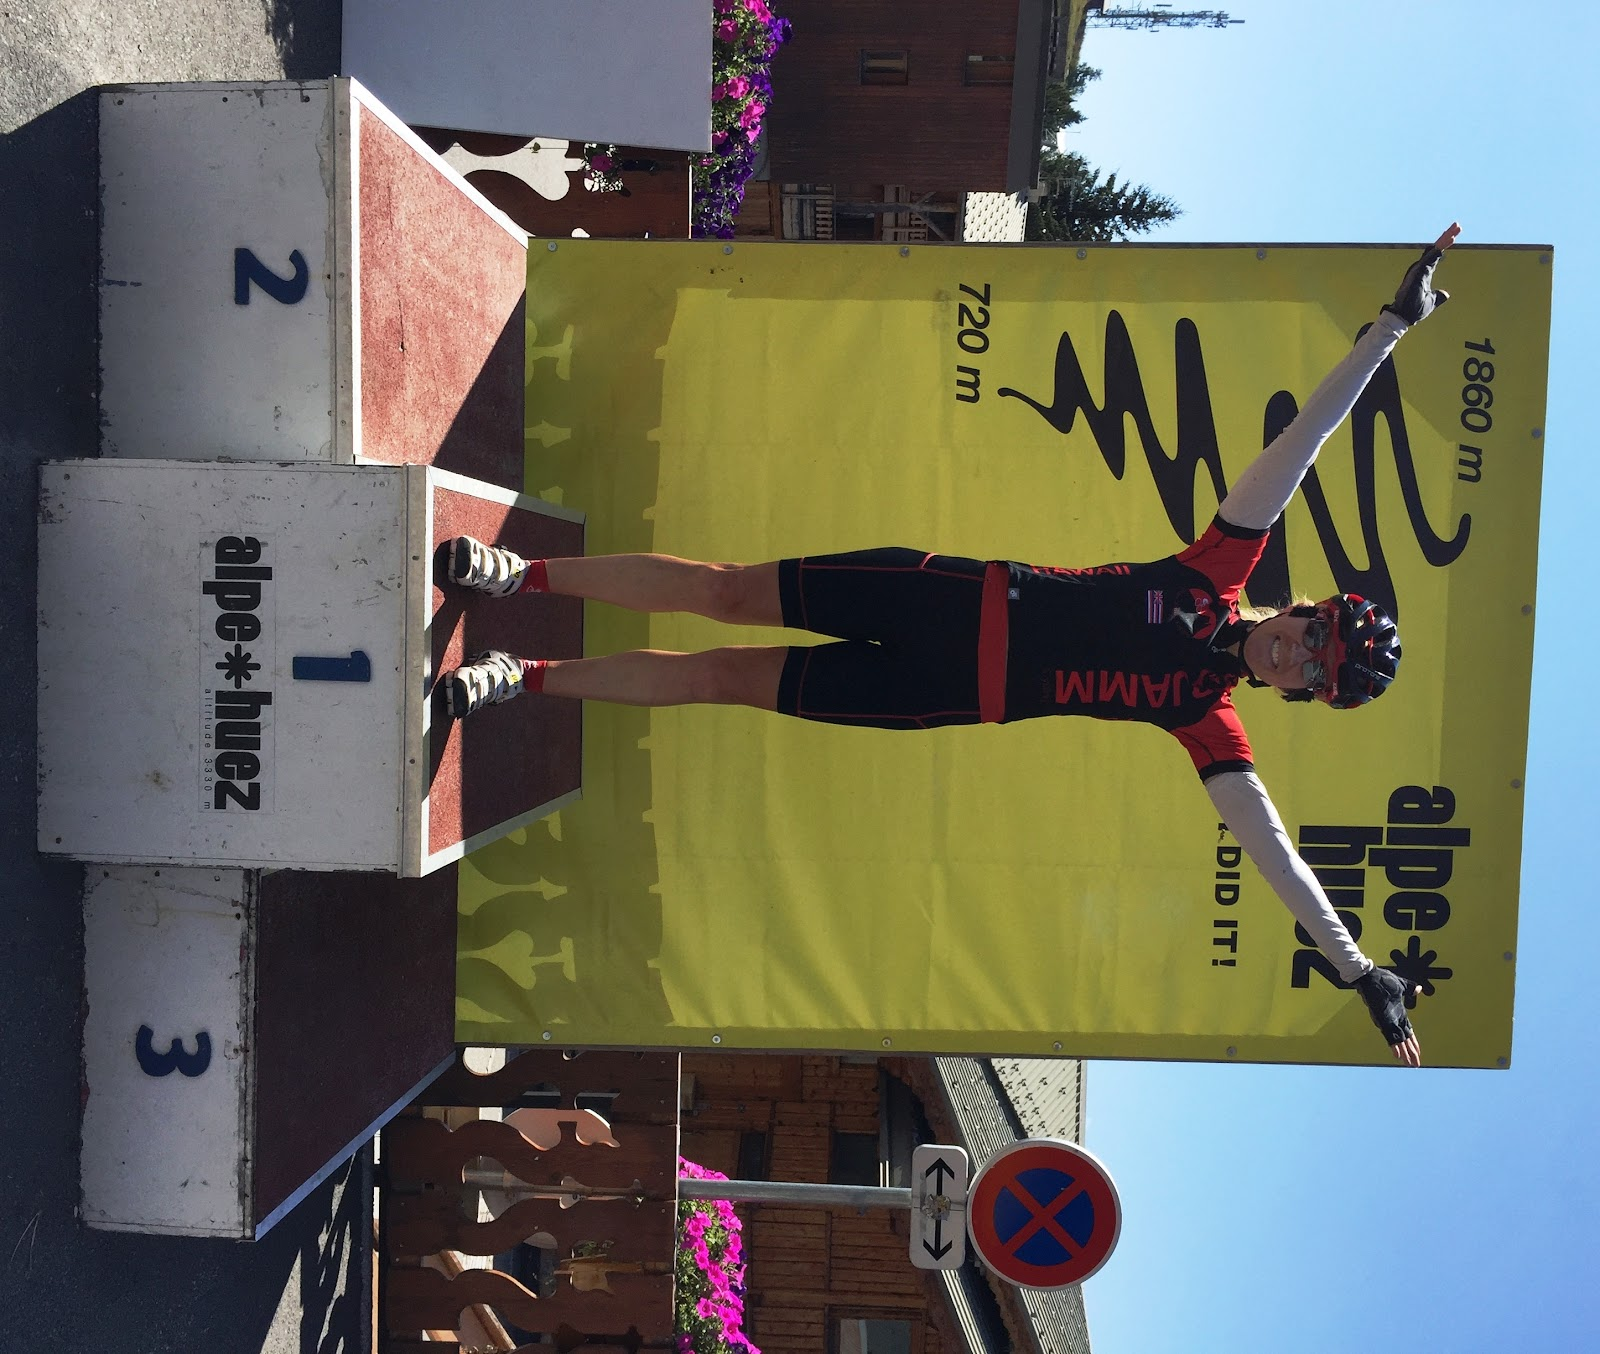 Cycling Alpe d'Huez - cyclist on the podium, PJAMM, Stacy Topping